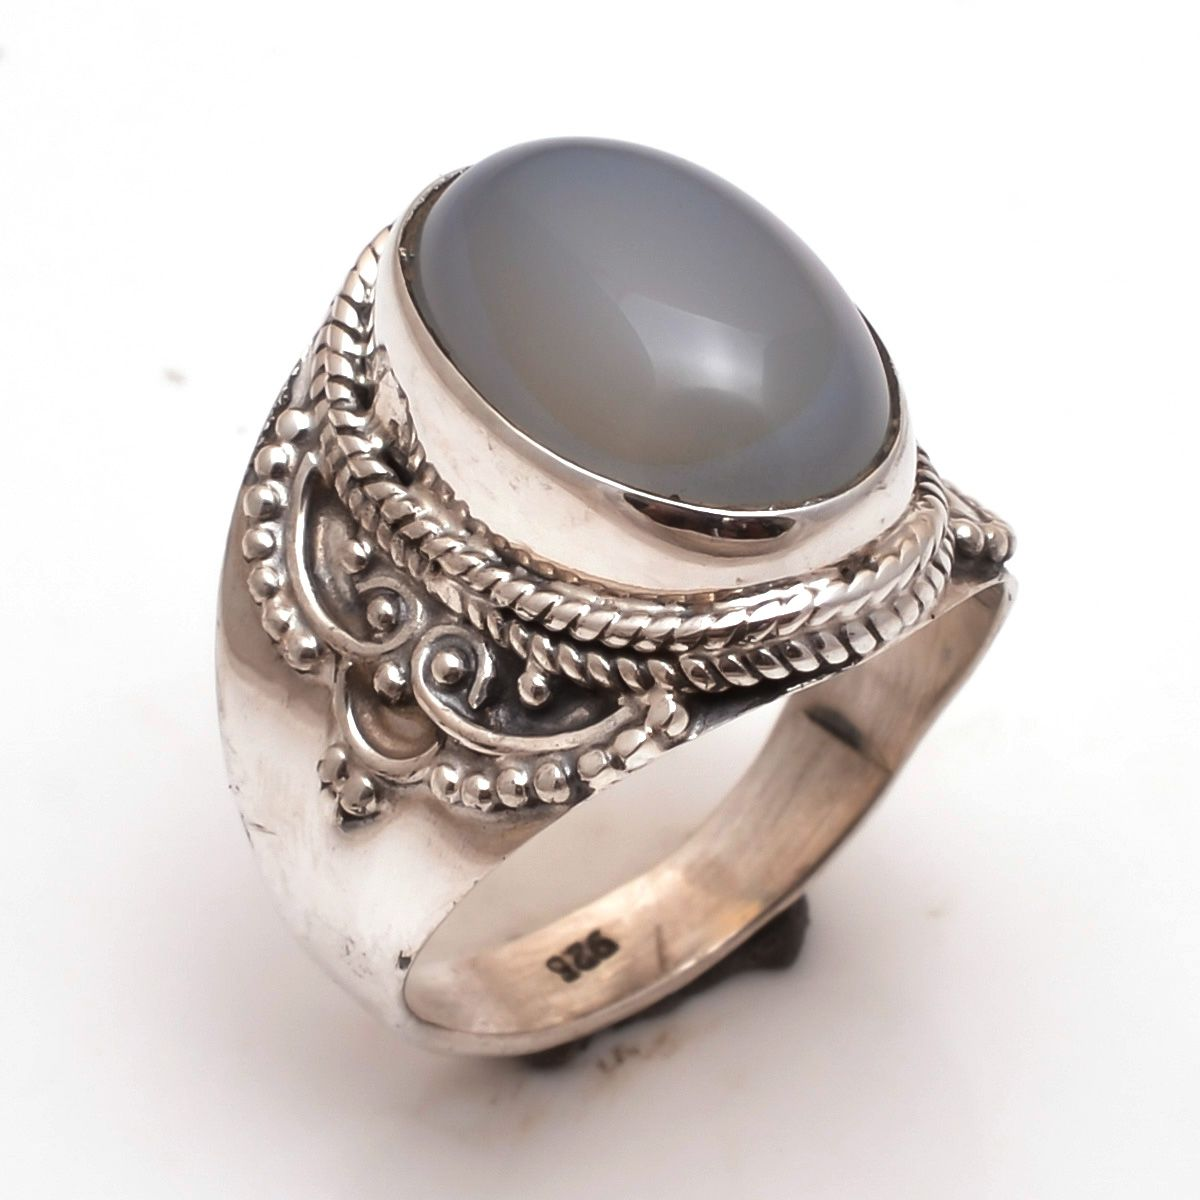 Chalcedony Gemstone 925 Sterling Silver Ring US US 8